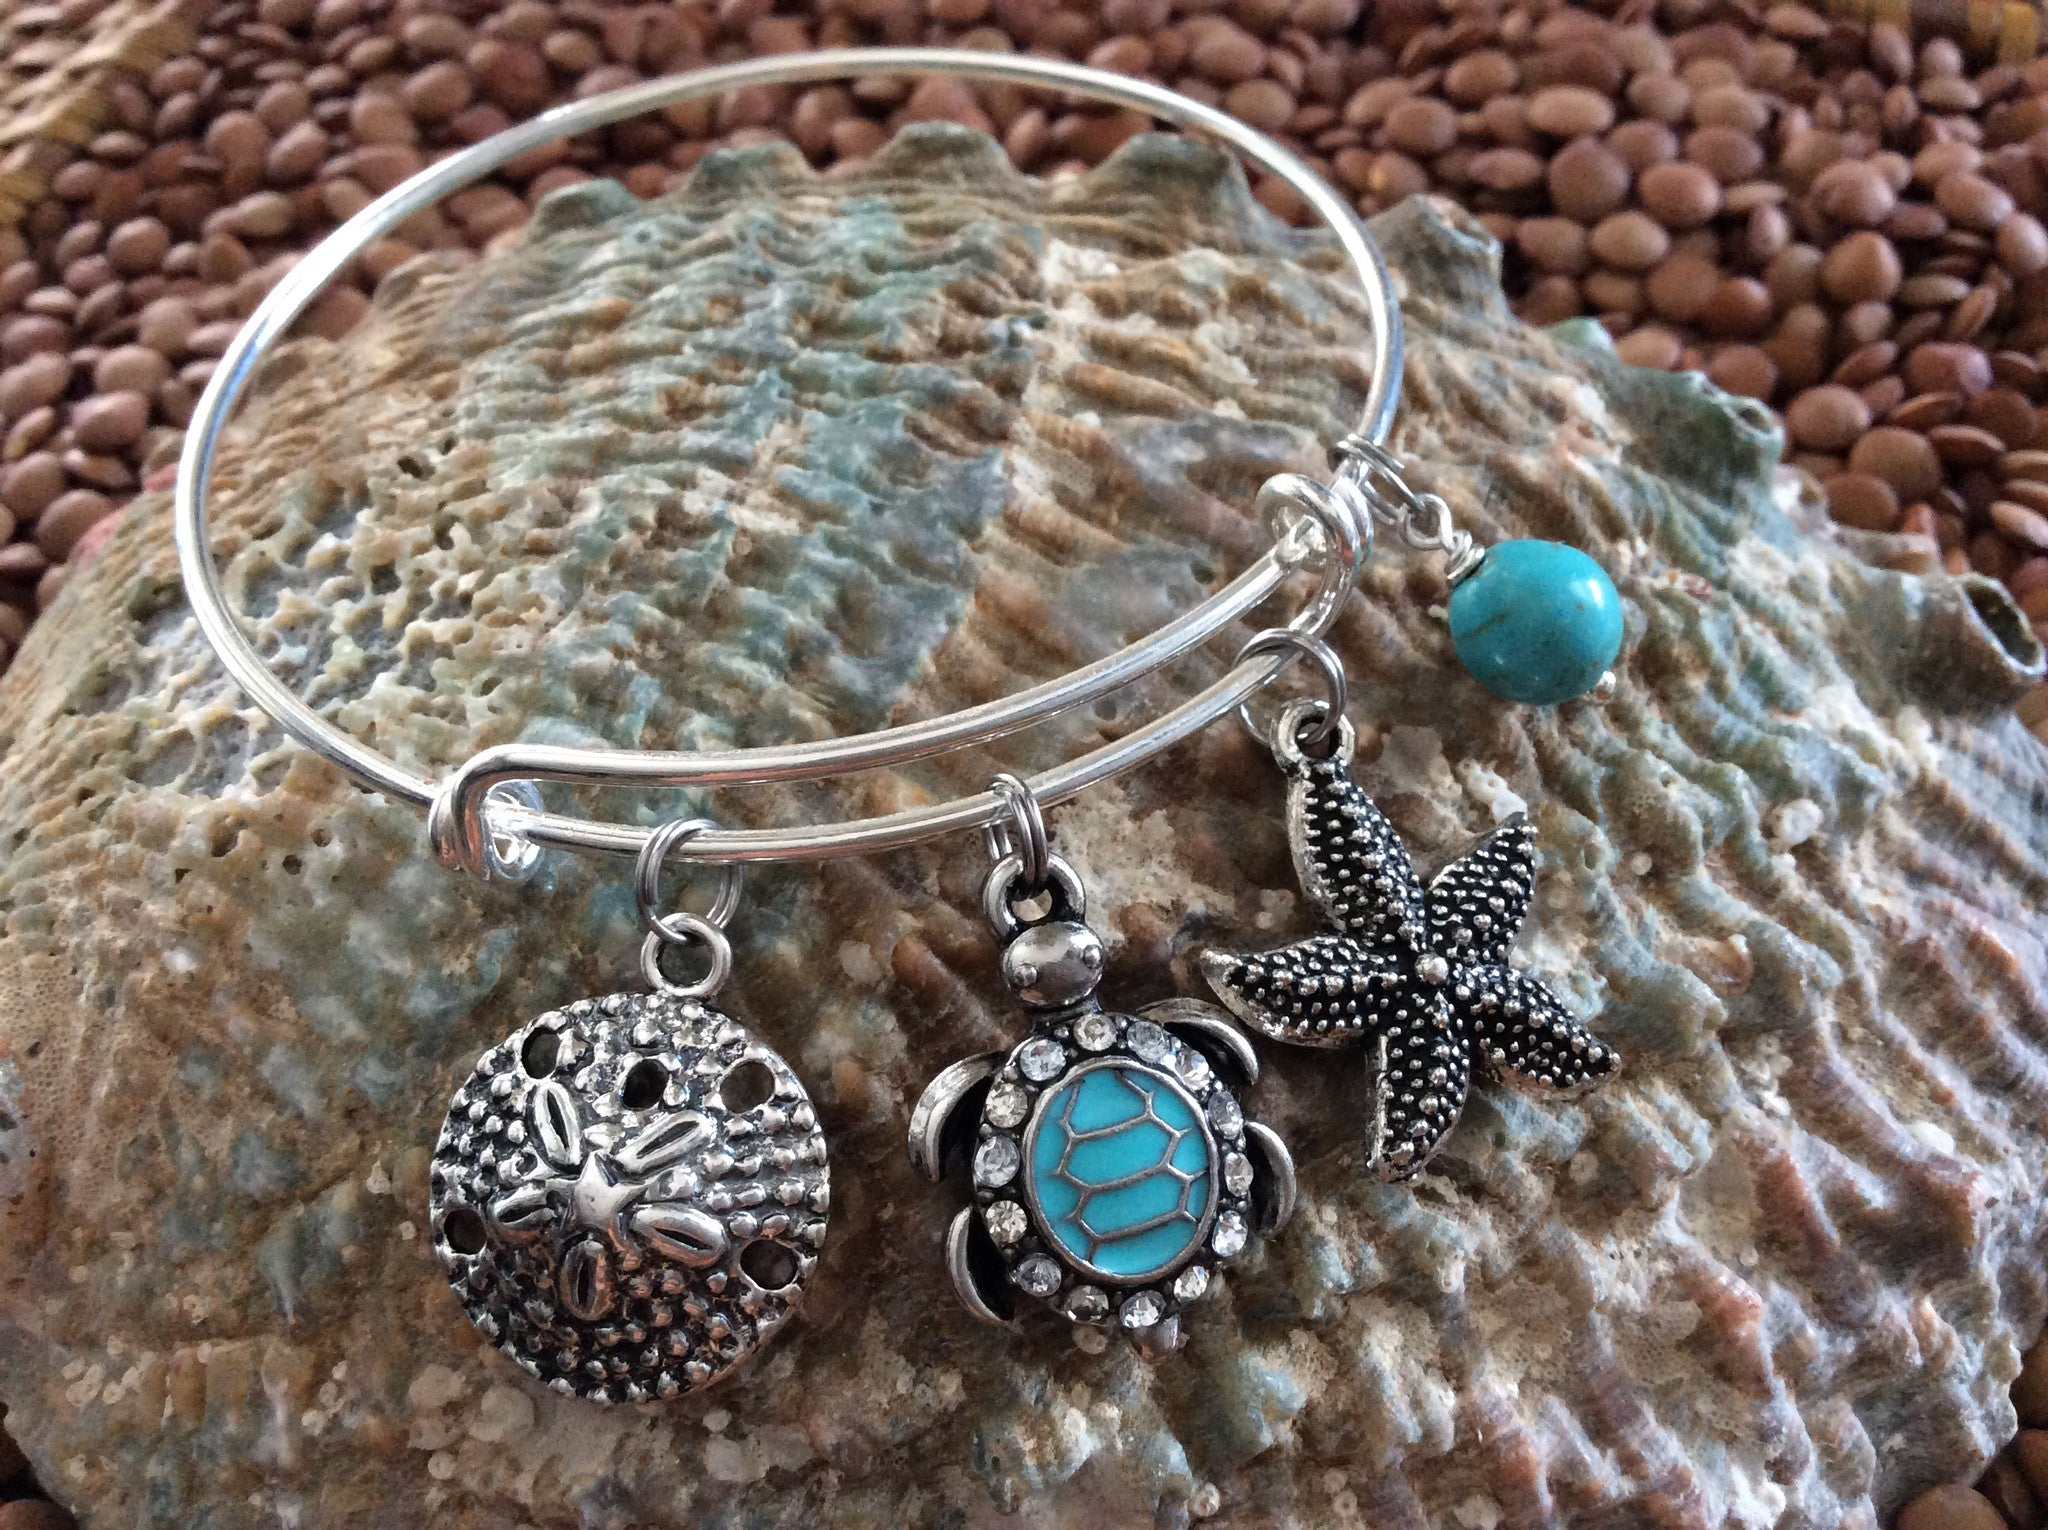 5dbf604fc40 ... Nautical Crystal Turquoise Silver Turtle Starfish Sand Dollar  Expandable Bracelet Silver Adjustable Wire Bangle Gift Ocean ...